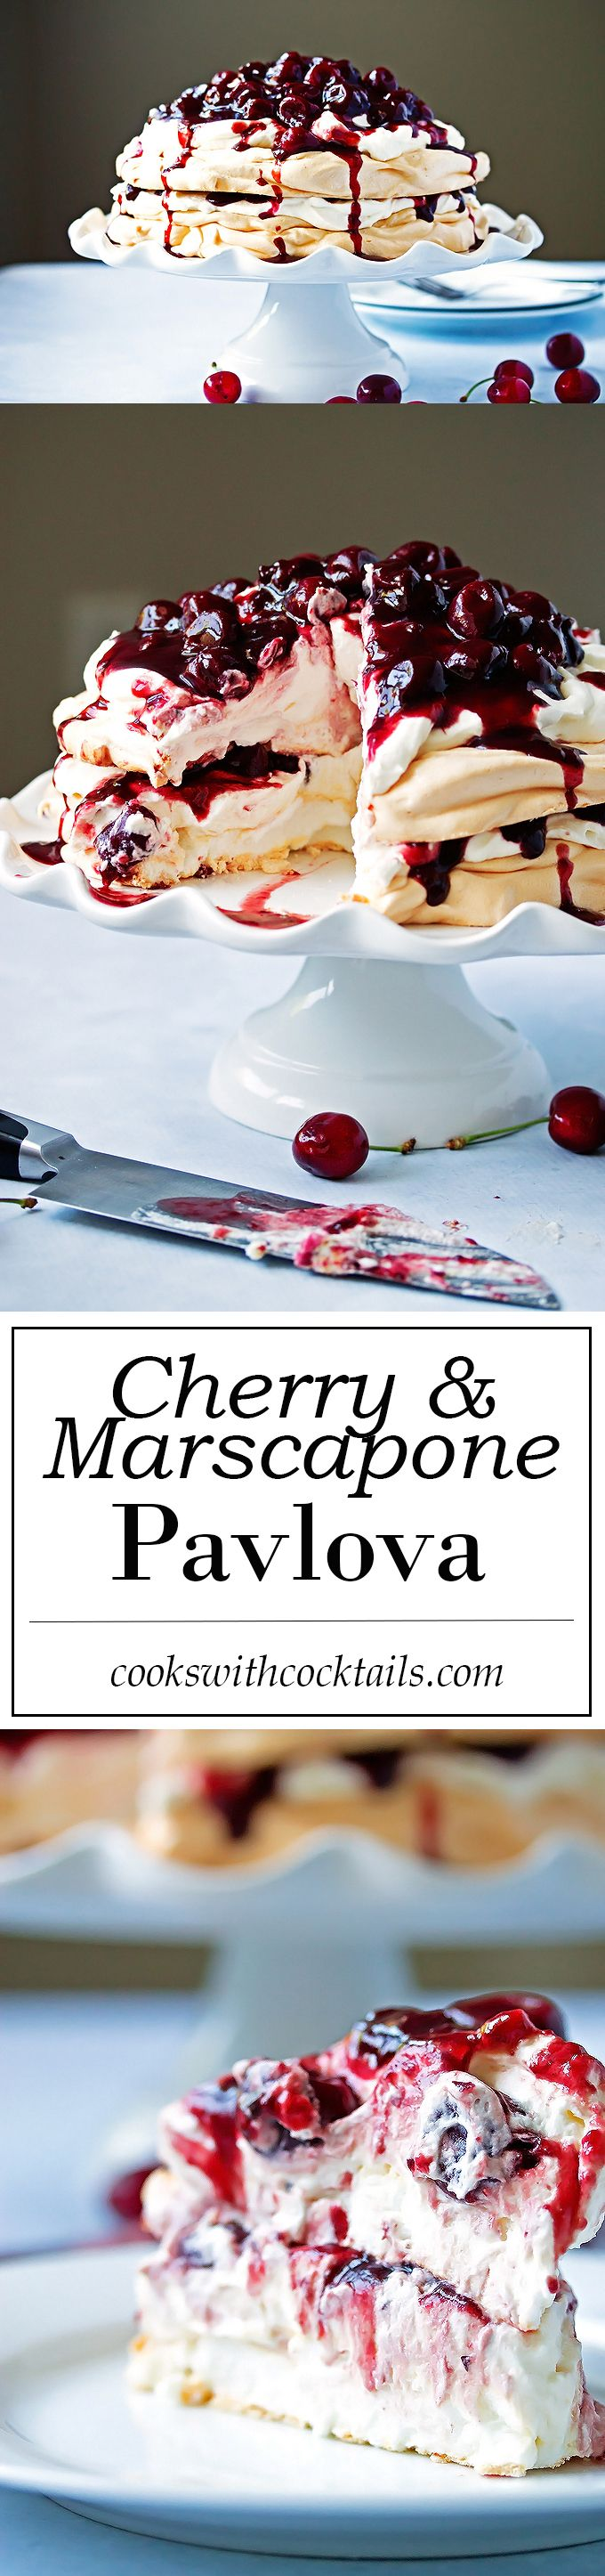 Perfect fluffy meringues layered with billowy whipped cream and marscapone cheese and topped off with fresh cherry and red wine compote. An light and tasty dessert that's super easy and very impressive! #dessert #meringue More